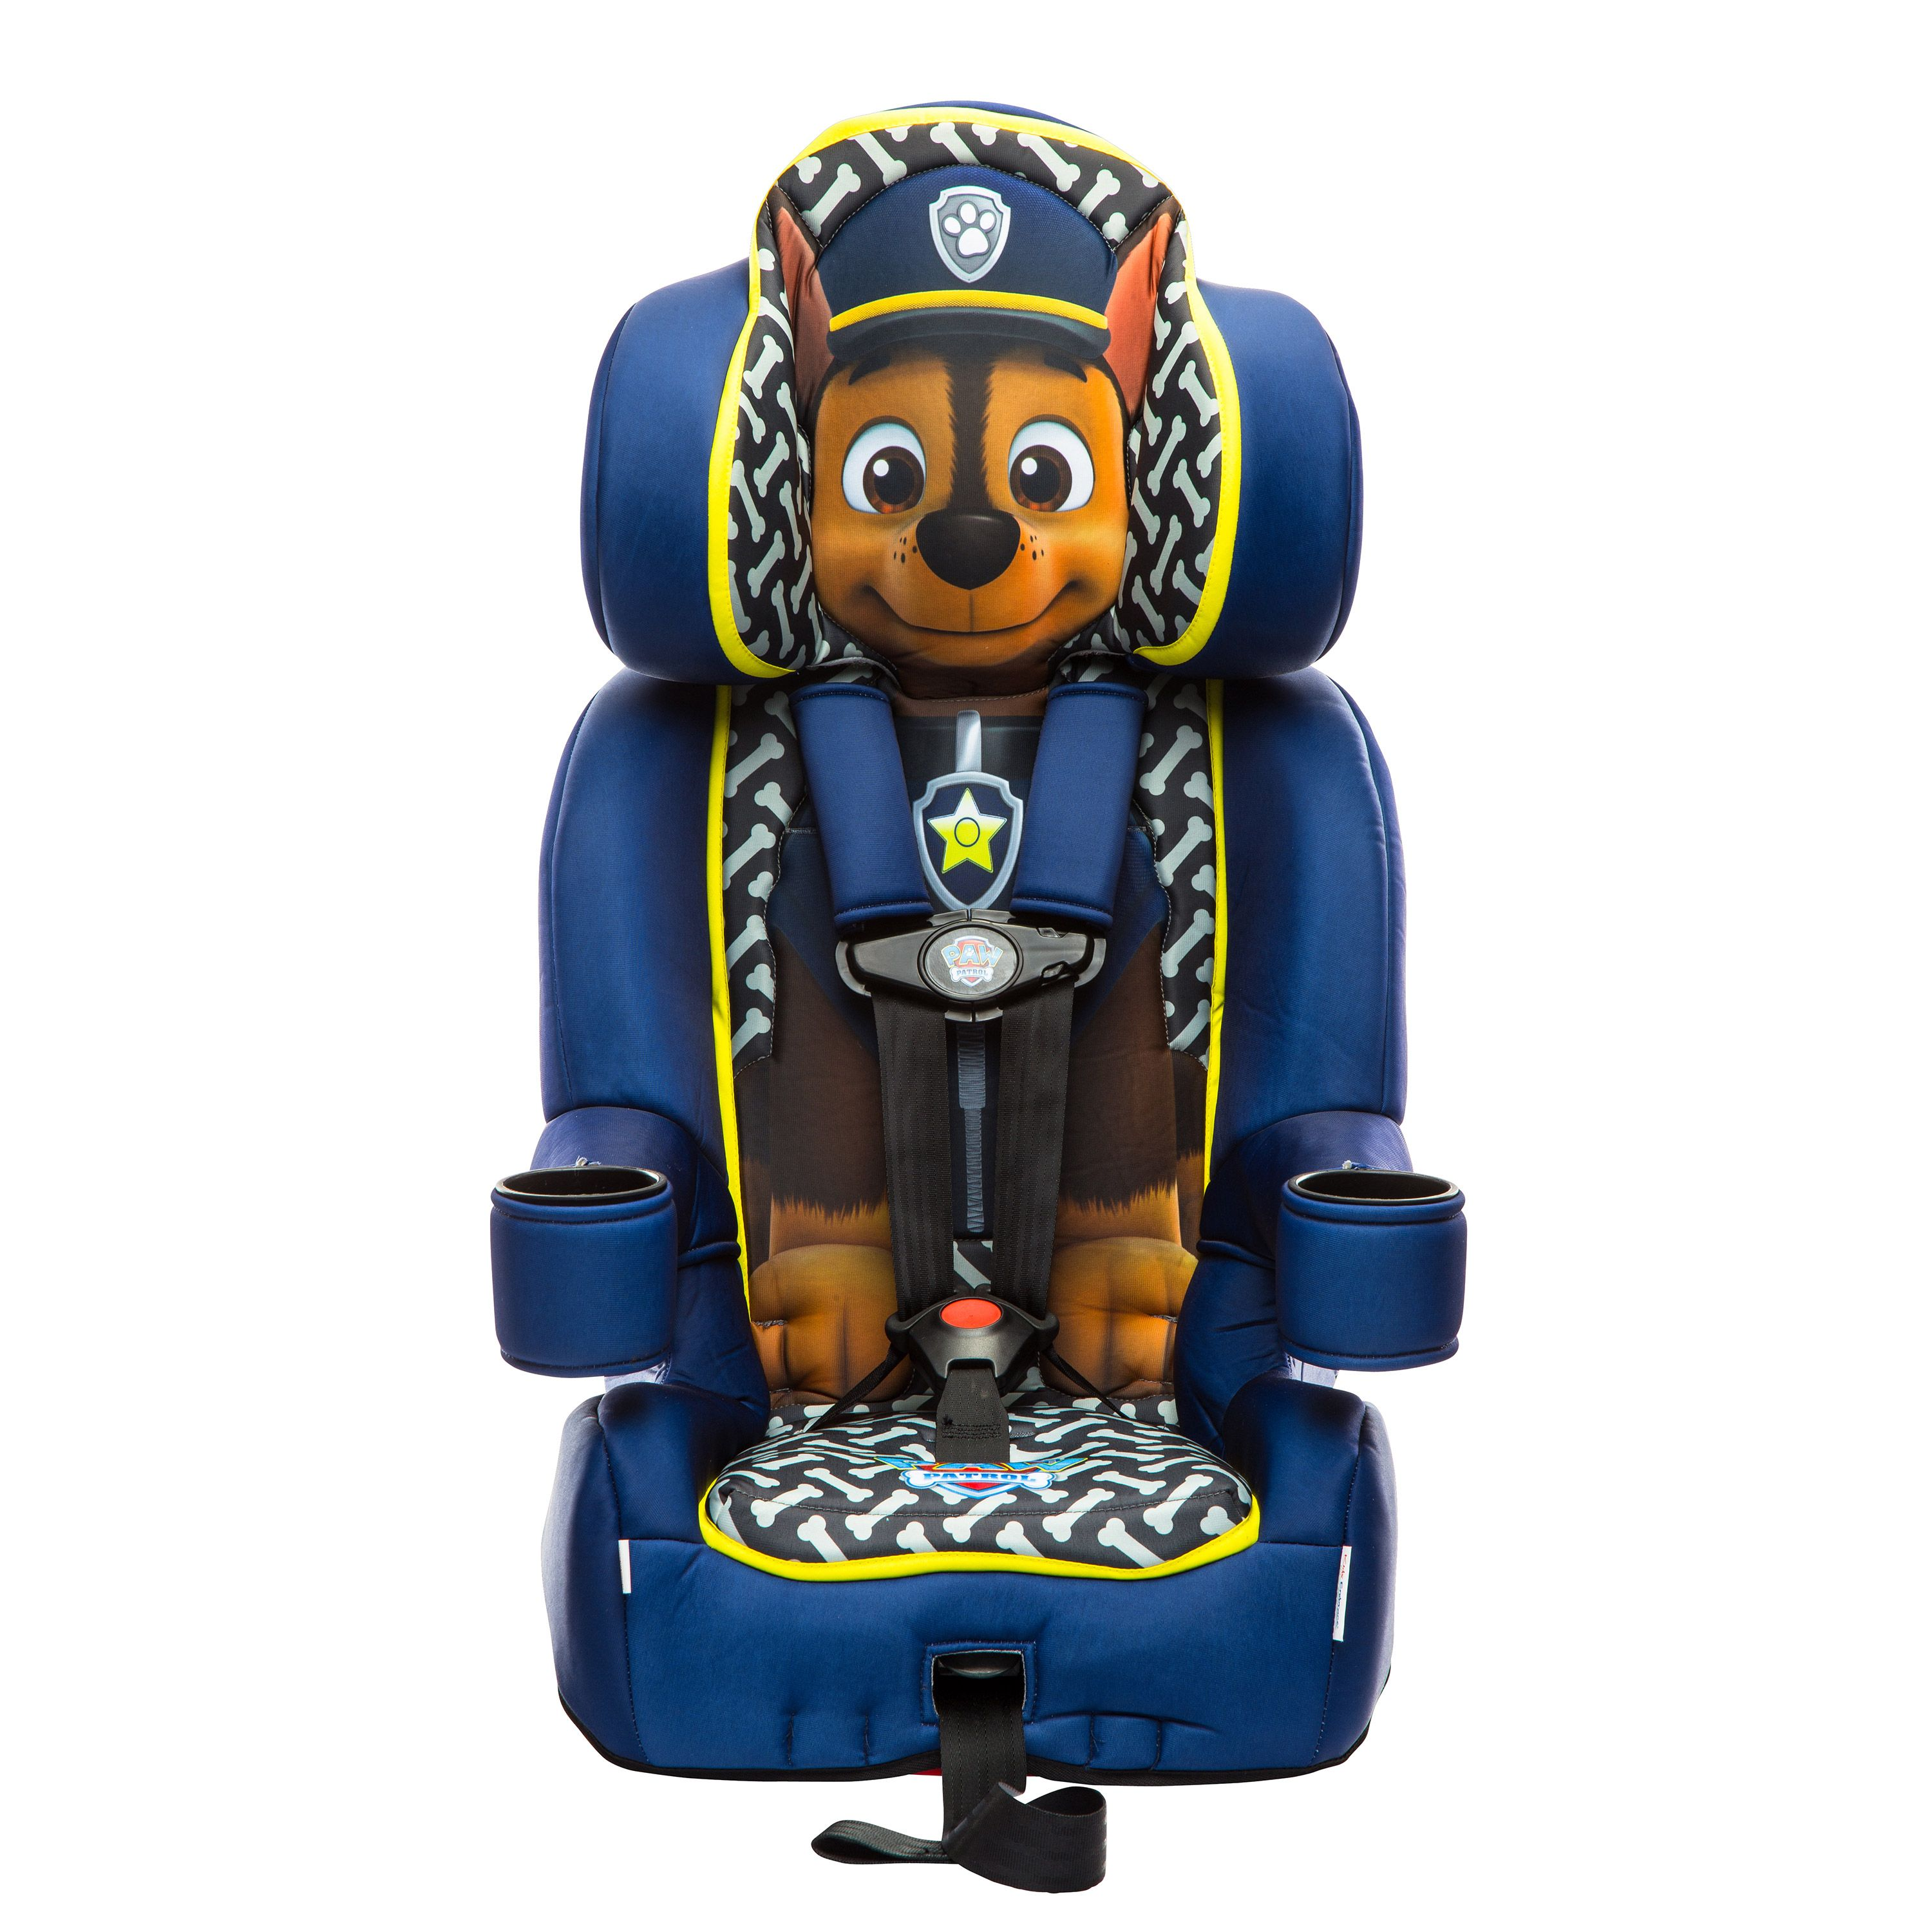 KidsEmbrace Combination Booster Car Seat, Nickelodeon Paw